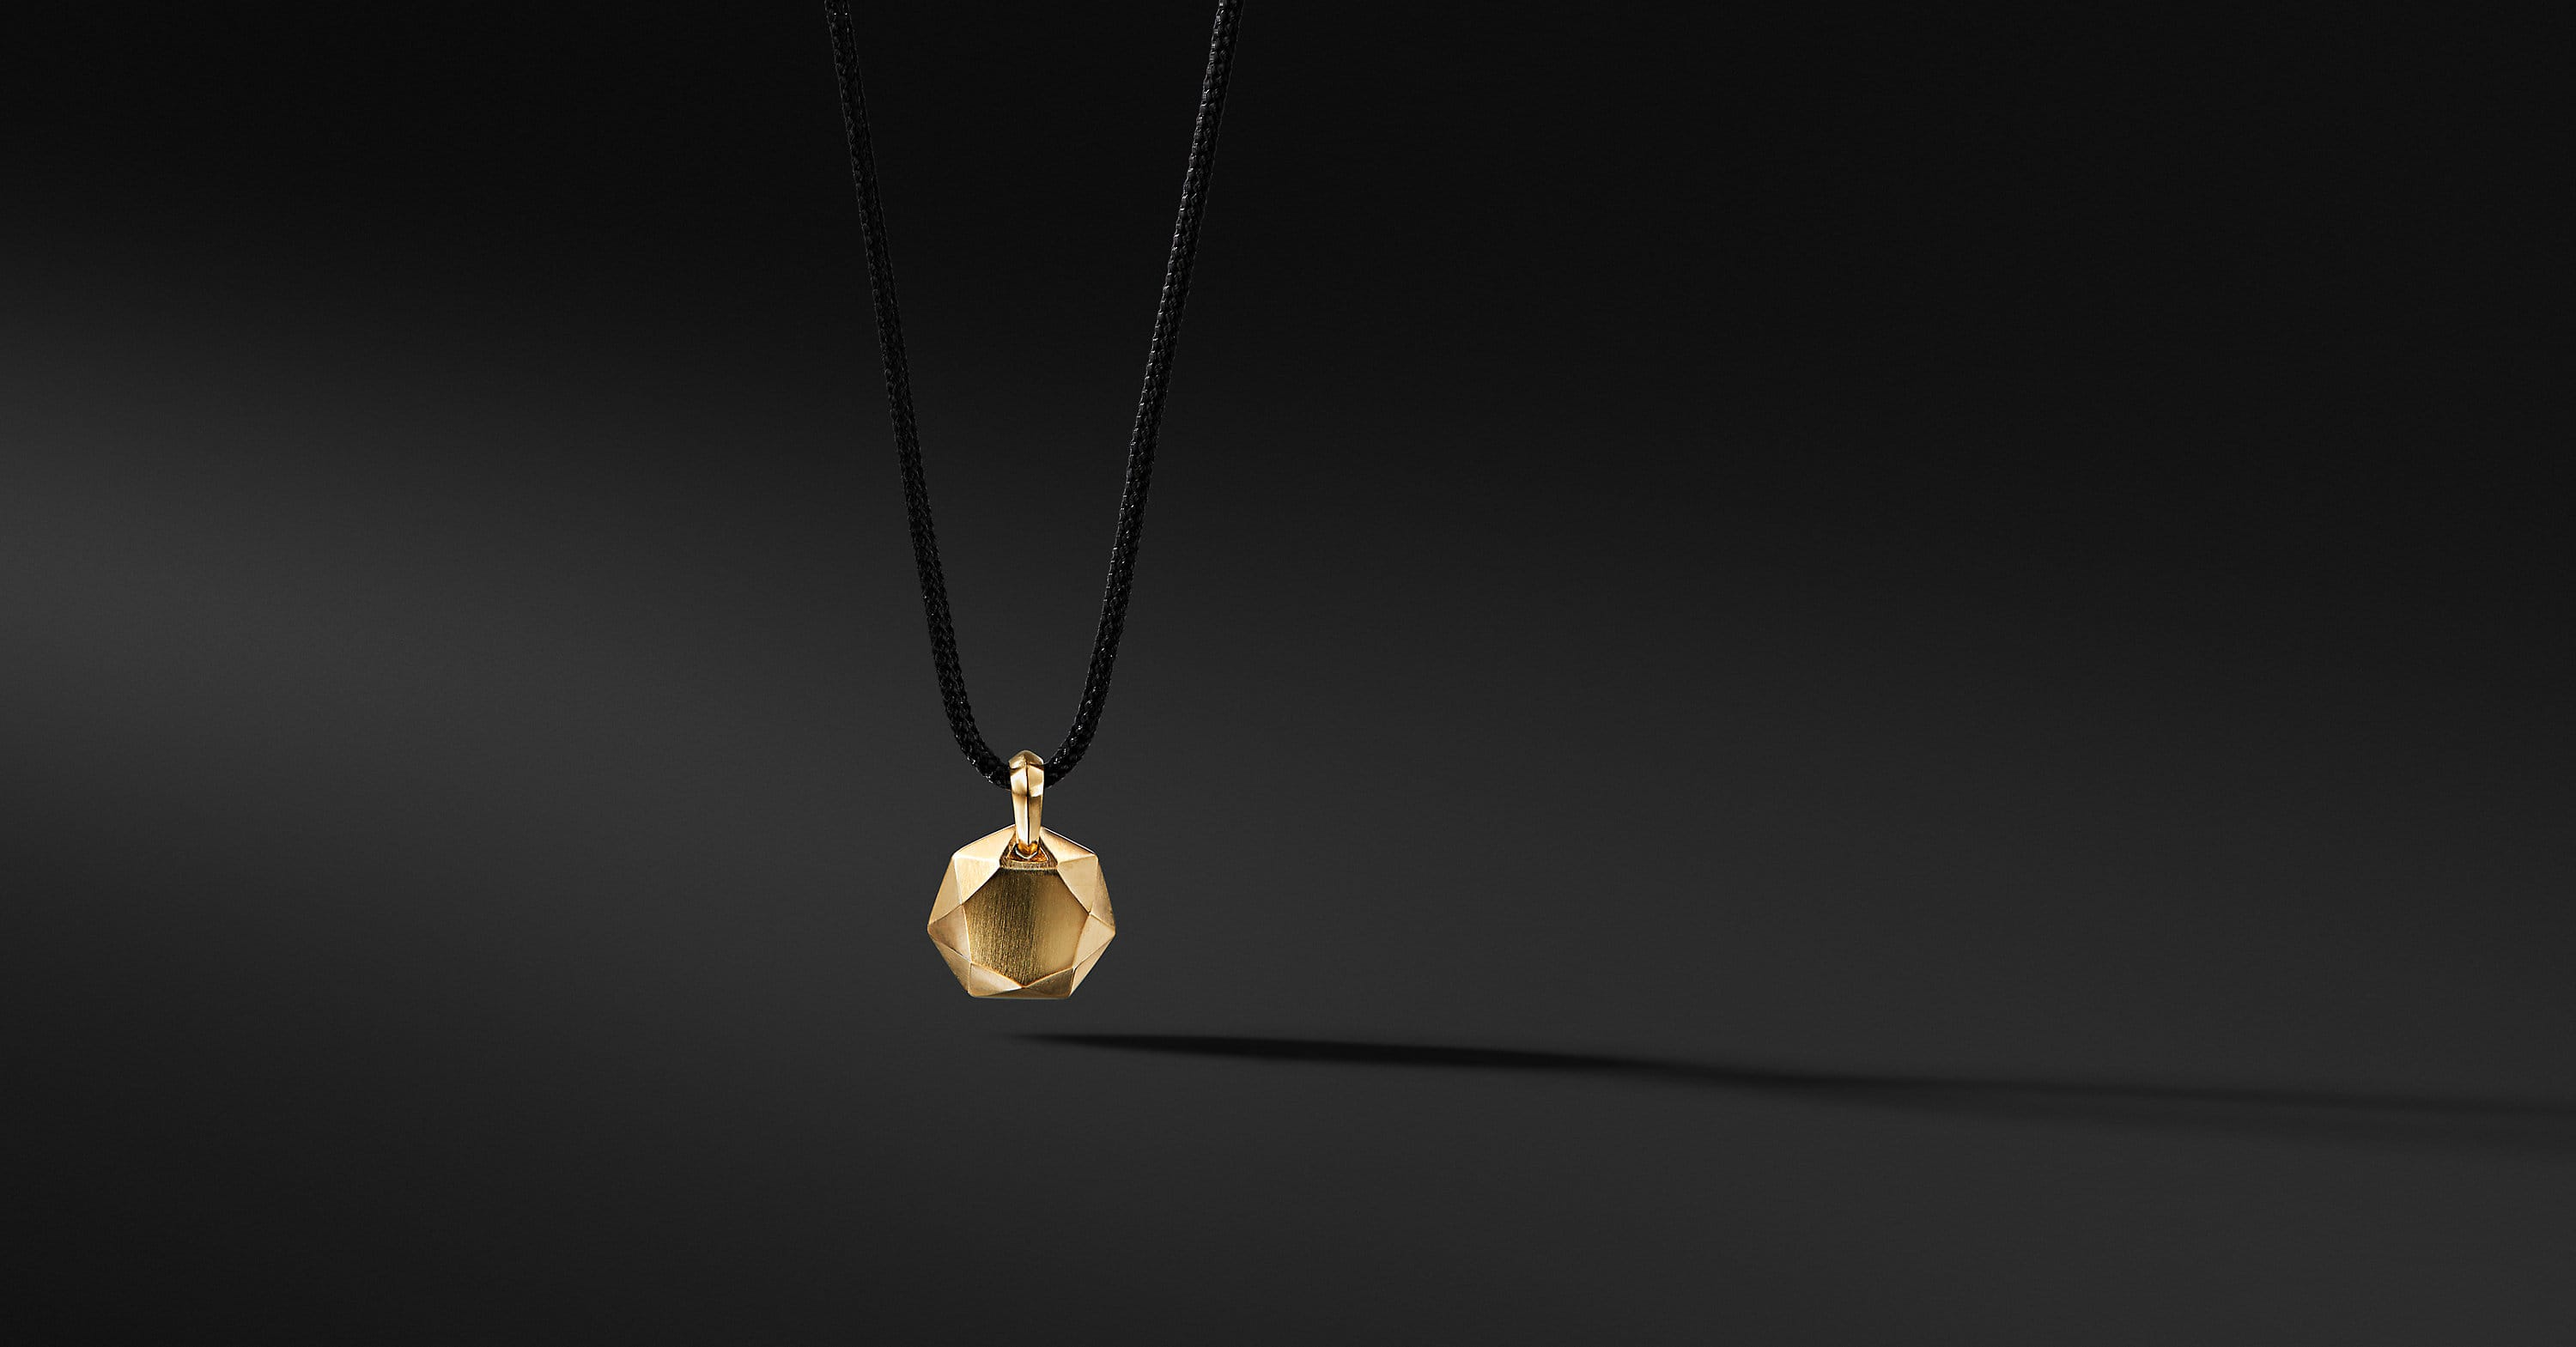 DY Fortune Pendant Necklace in 18K Gold